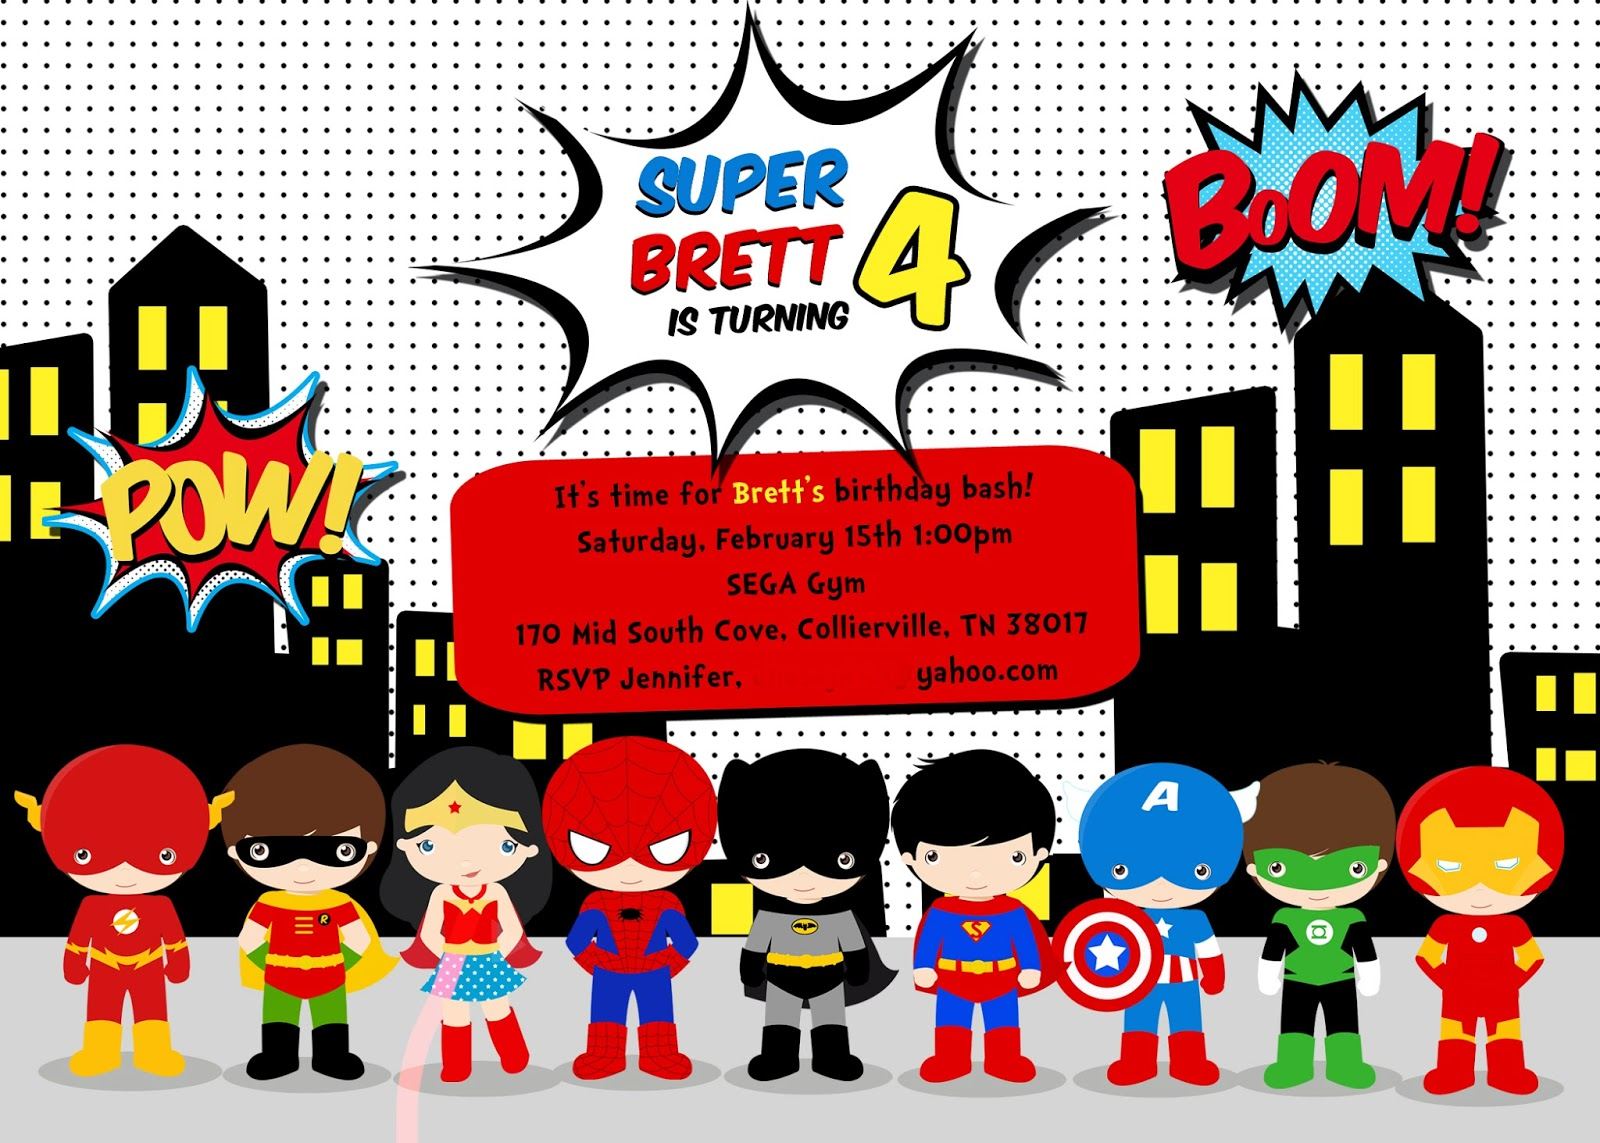 birthday party invitations templates net superhero birthday party invitation mickey mouse invitations birthday invitations